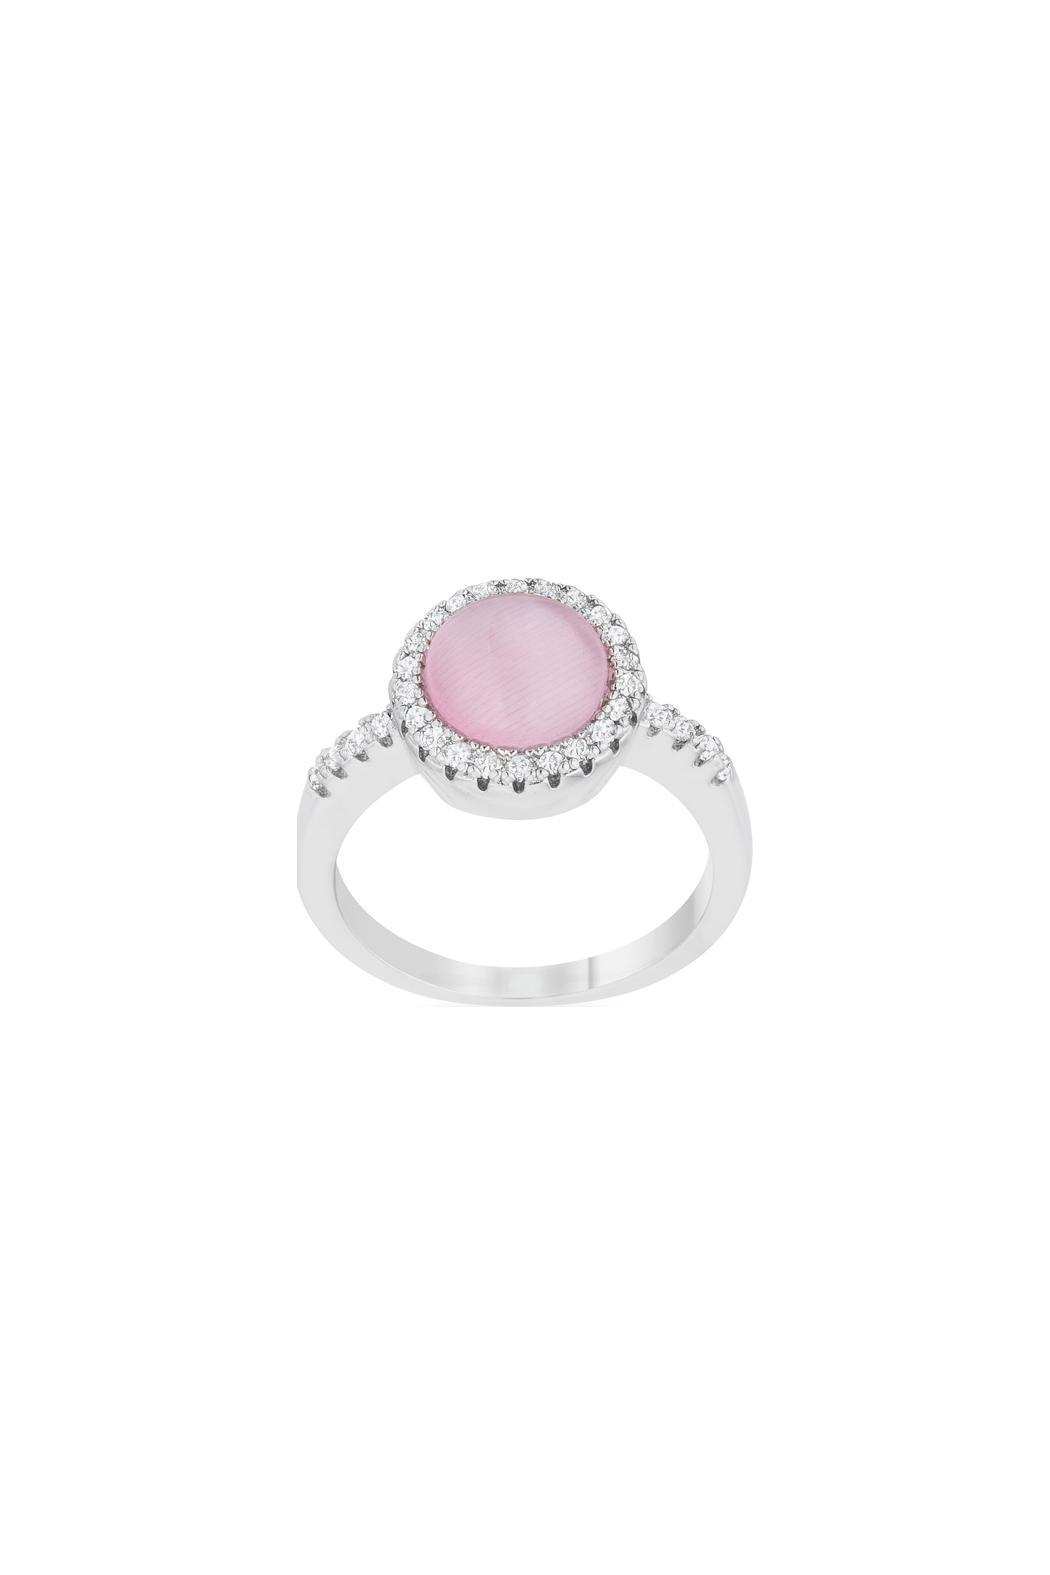 Wild Lilies Jewelry  Pink Stone Ring - Front Full Image